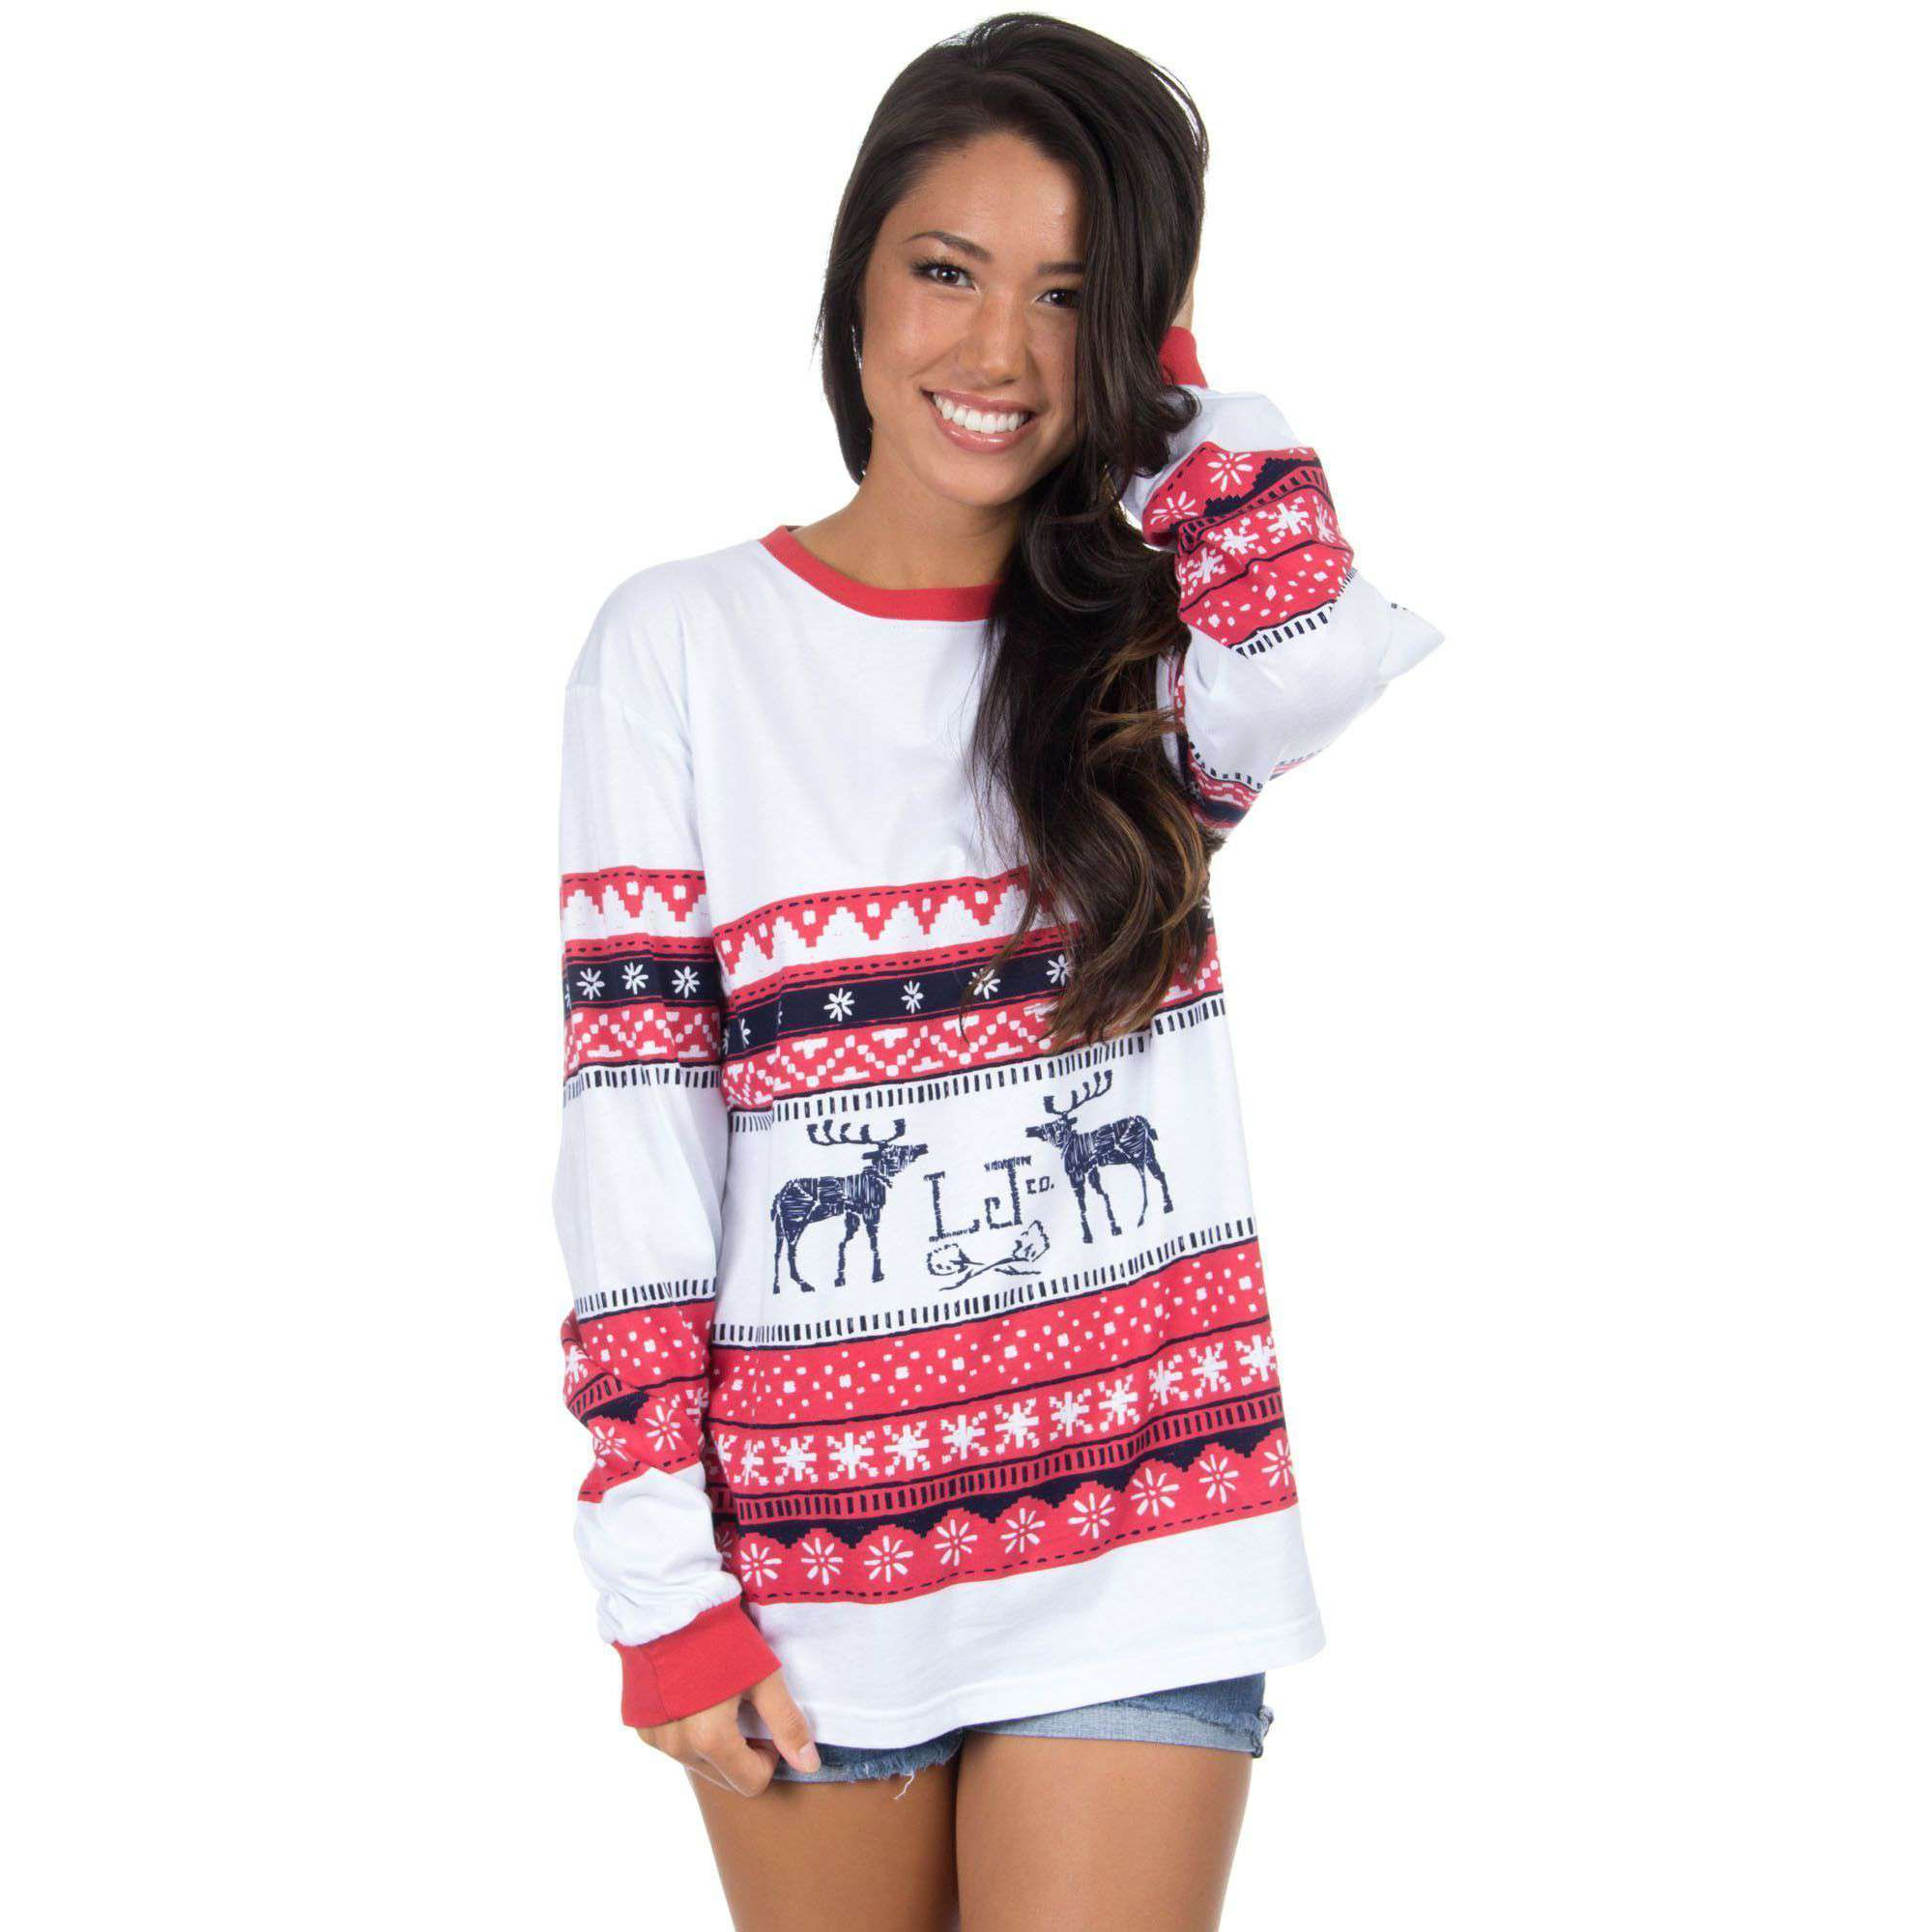 Christmas Sweater Long Sleeve Tee Shirt in Navy/Red by Lauren James - FINAL SALE